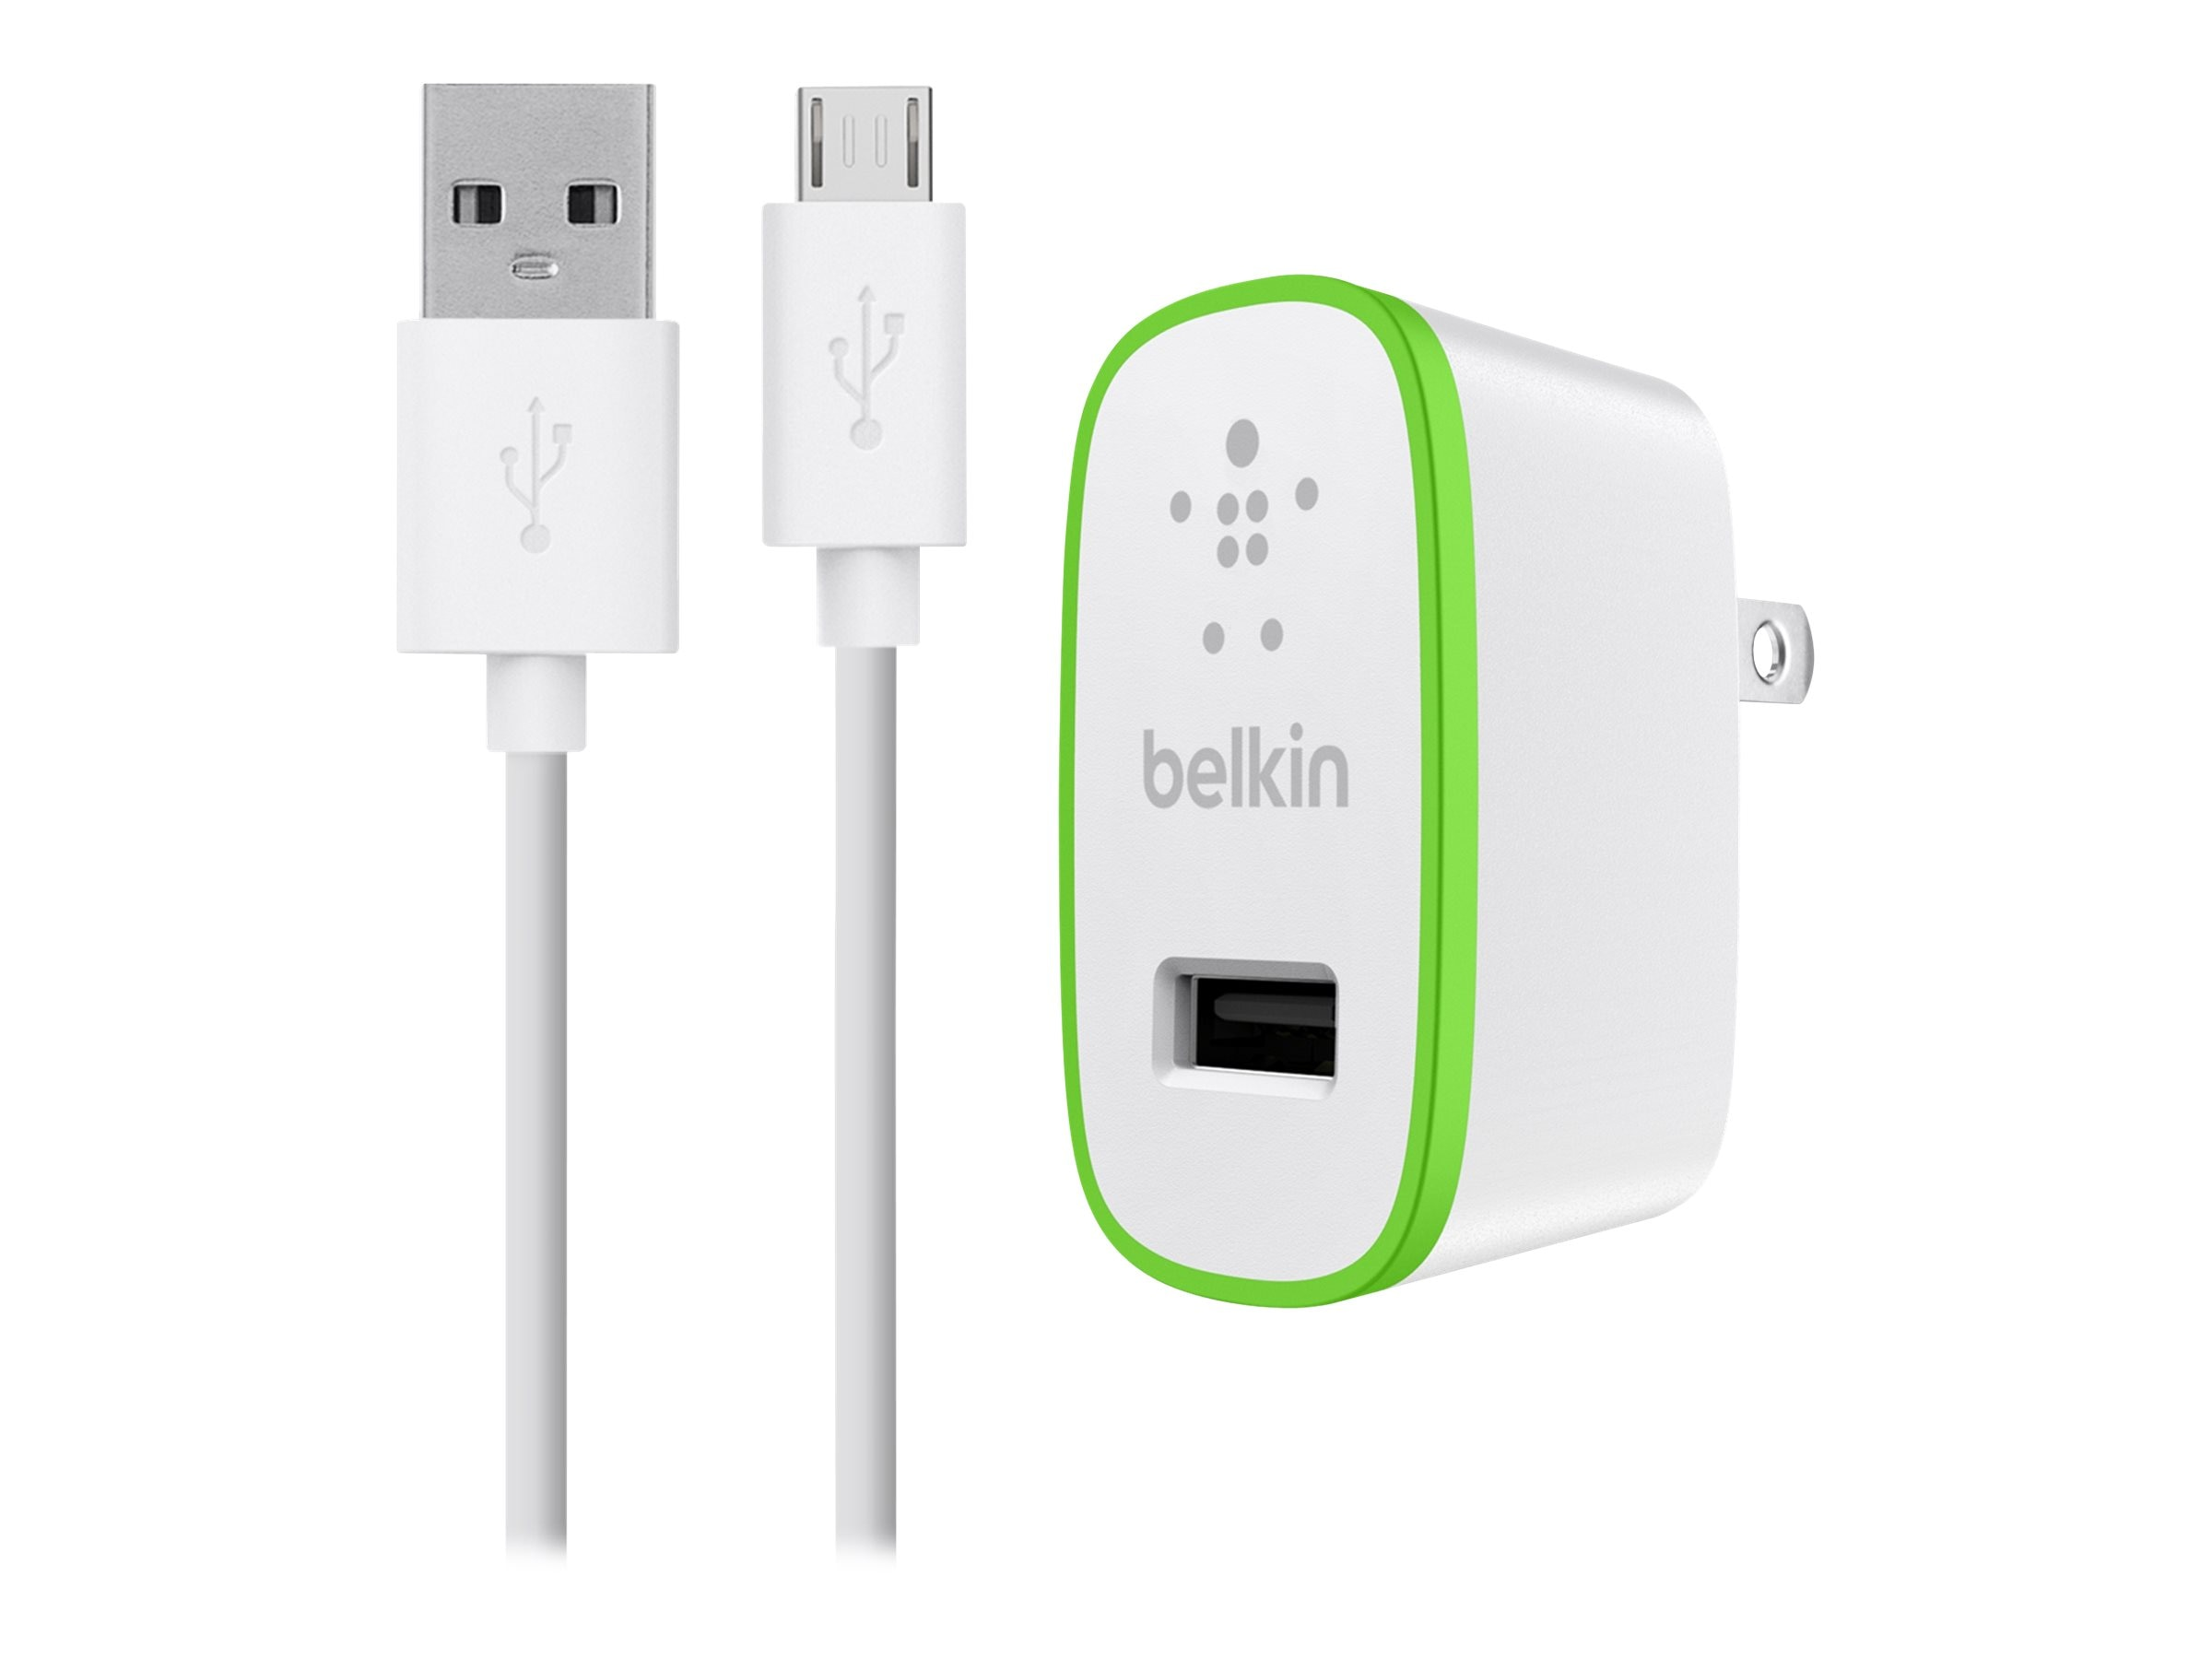 Belkin Universal Home Charger, Micro-USB Charge Sync Cable, 10W 2.1A, White, F8M667TT04-WHT, 17733171, Battery Chargers